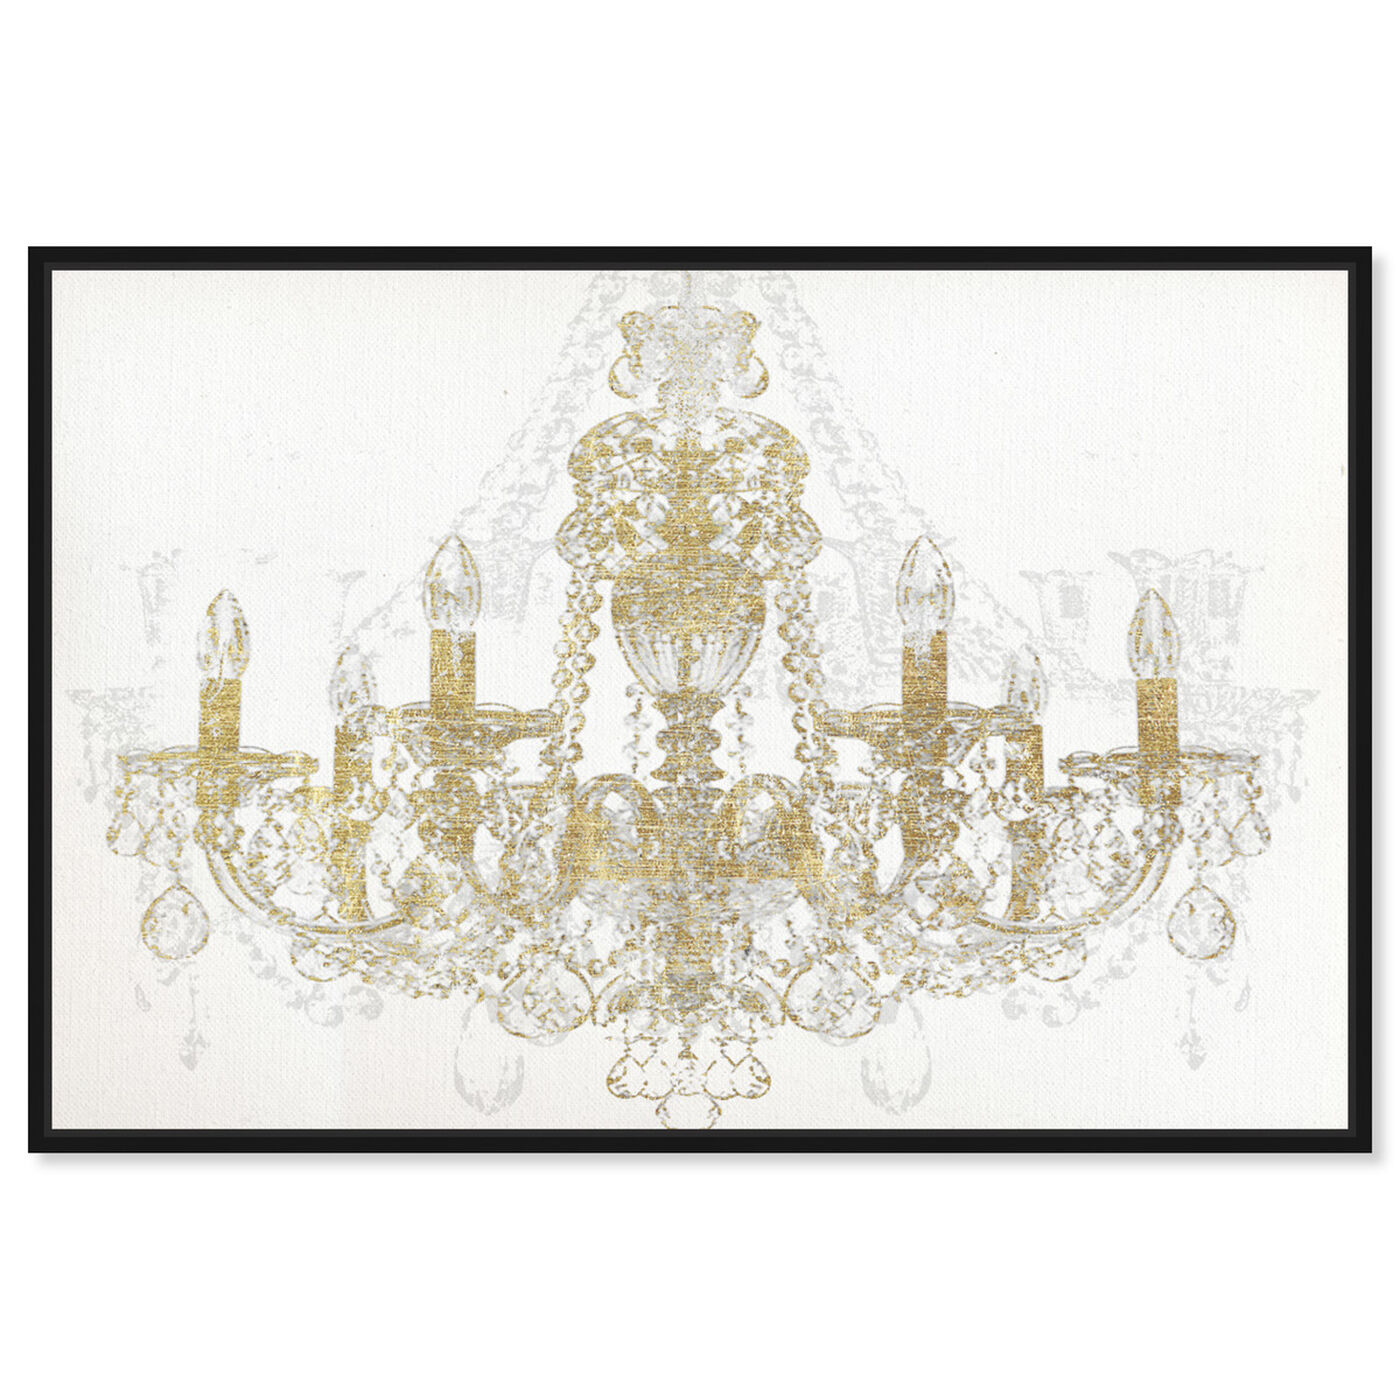 Front view of Chandelier Diamond featuring fashion and glam and chandeliers art.